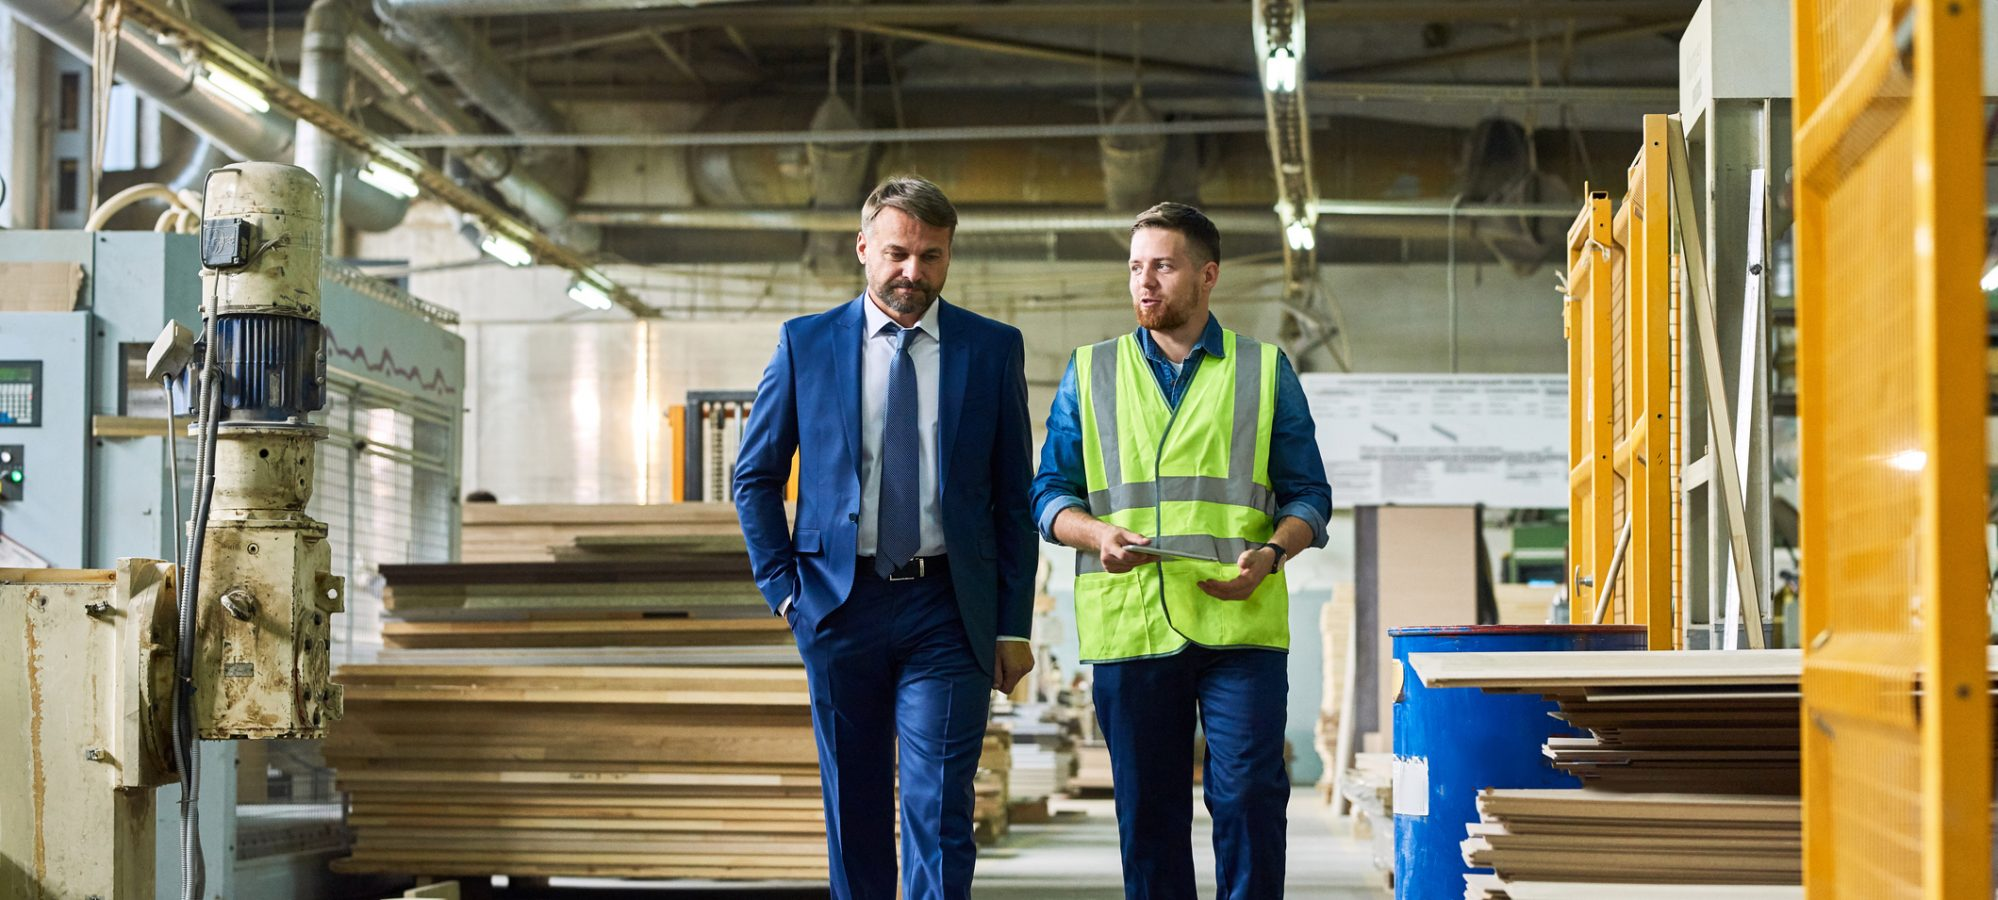 Image of young business owner giving tour of factory to ESOP valuation expert